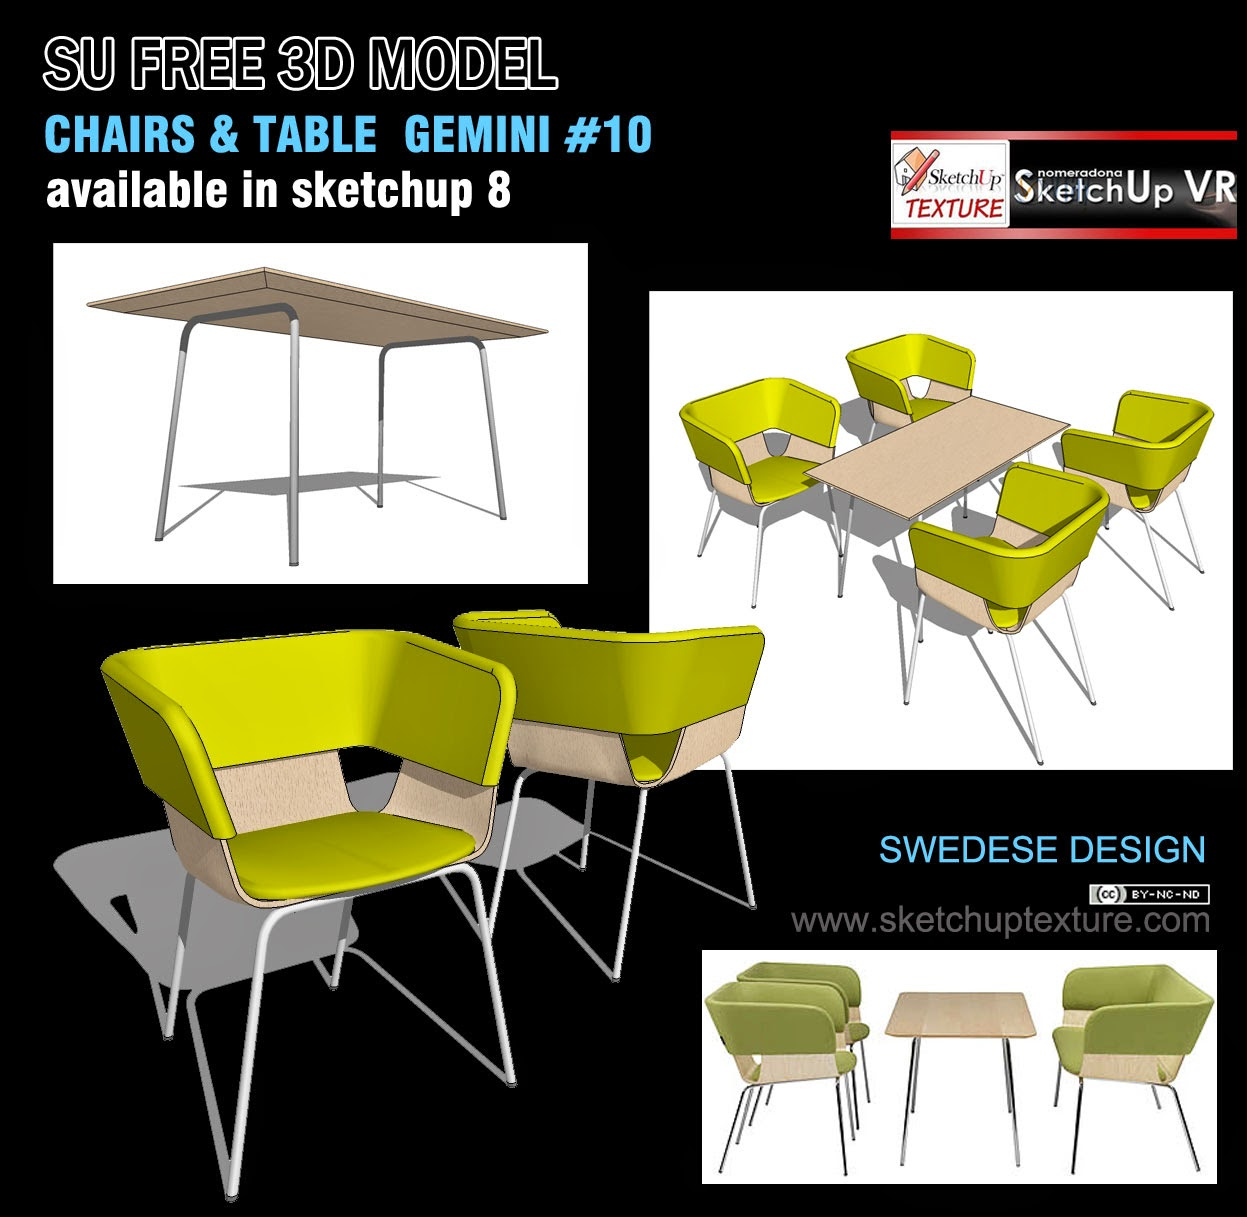 Chair Design Sketchup Tj Maxx Chairs Texture Free 3d Model Table 10